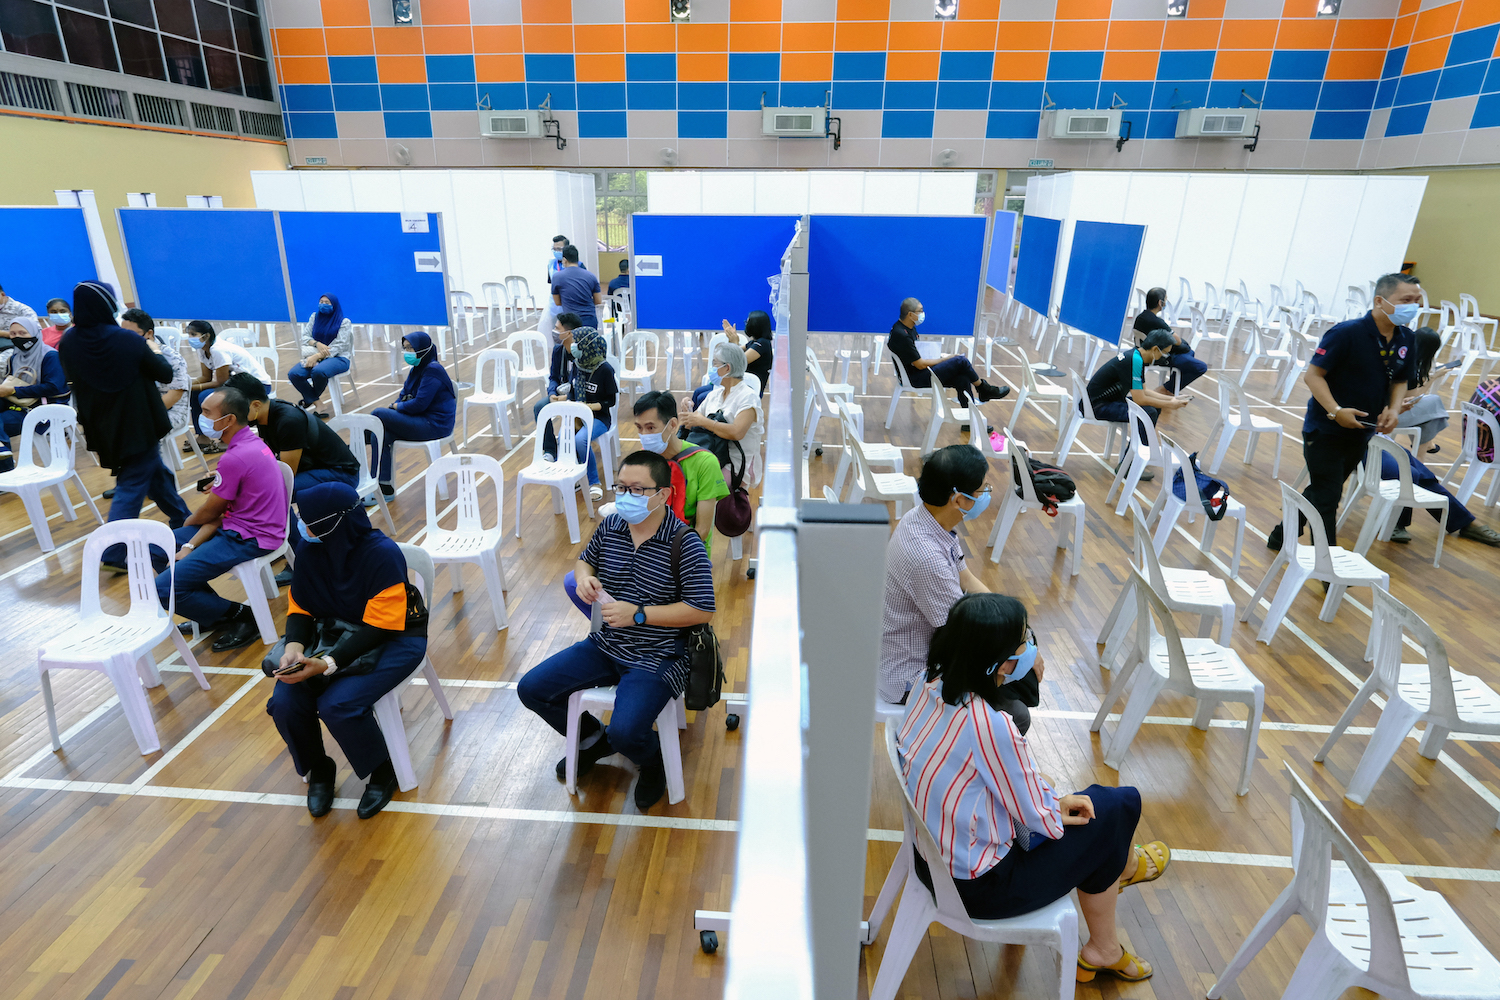 People wait in an observation area after receiving a dose of the Sinovec Covid-19 vaccine at the Pandamaran Sports Hall in Port Klang, Selangor, Malaysia, on Thursday. (Bloomberg Photo)